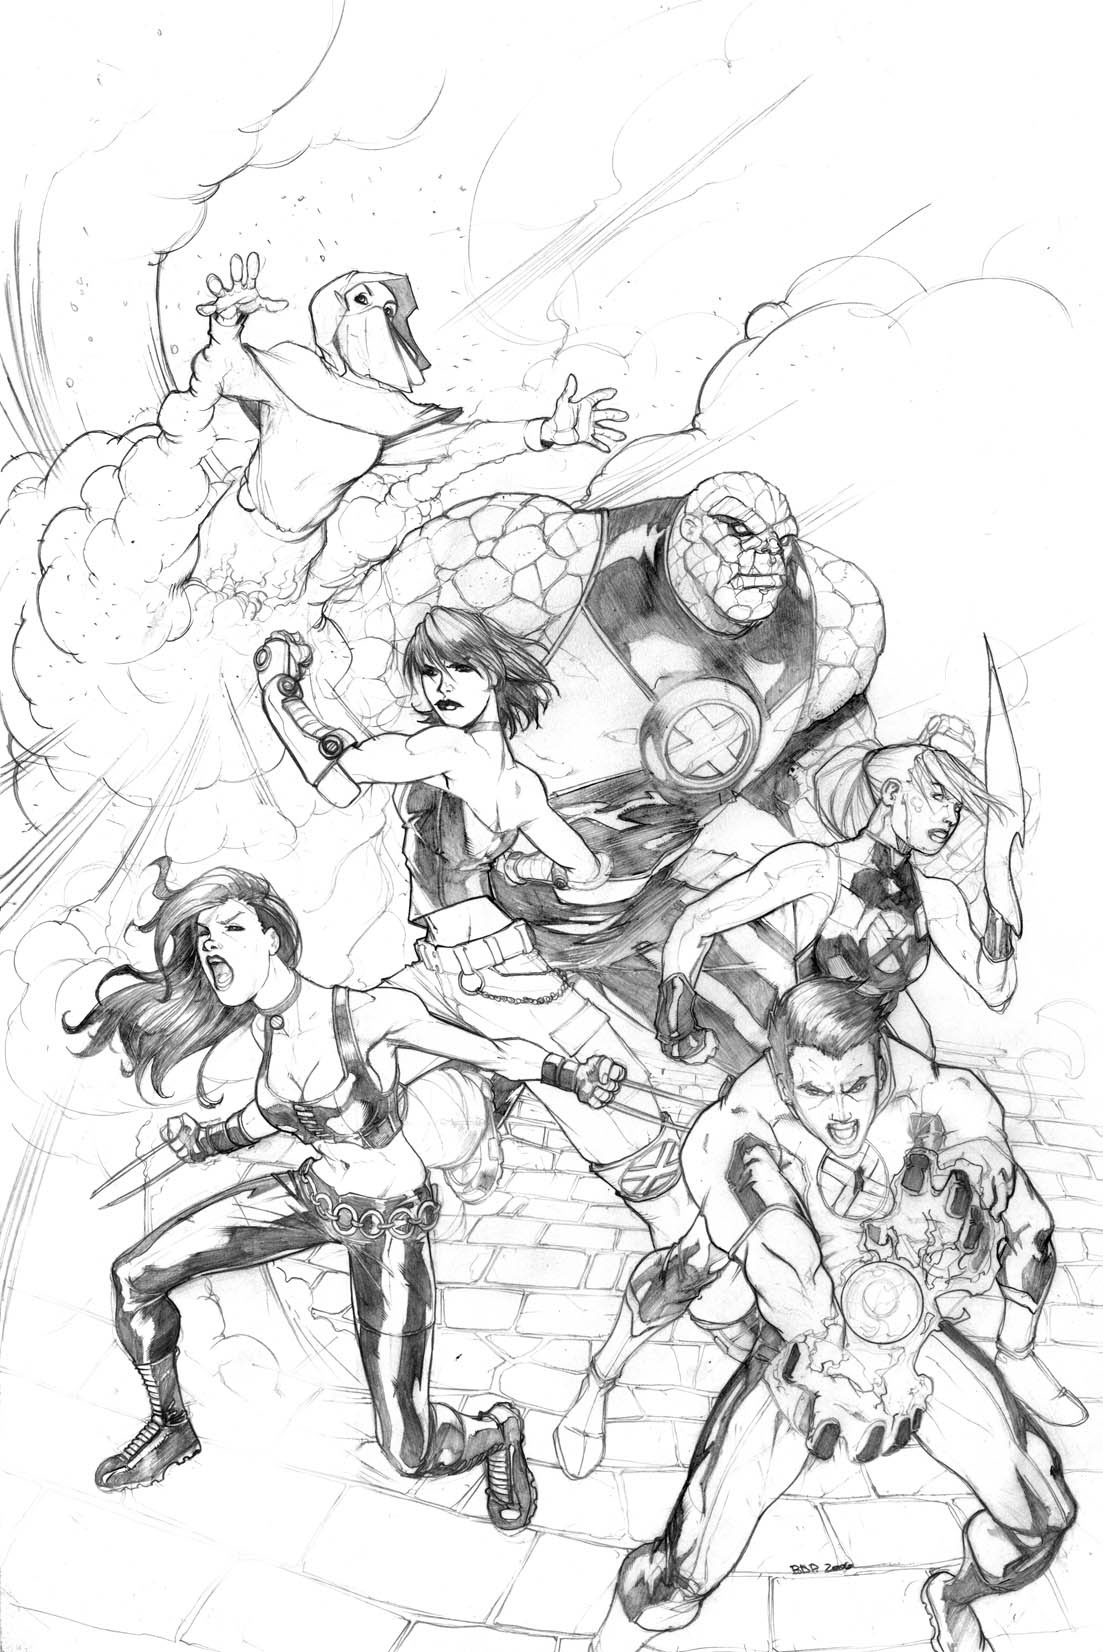 Sequential and various Marvel Art through the years on Behance